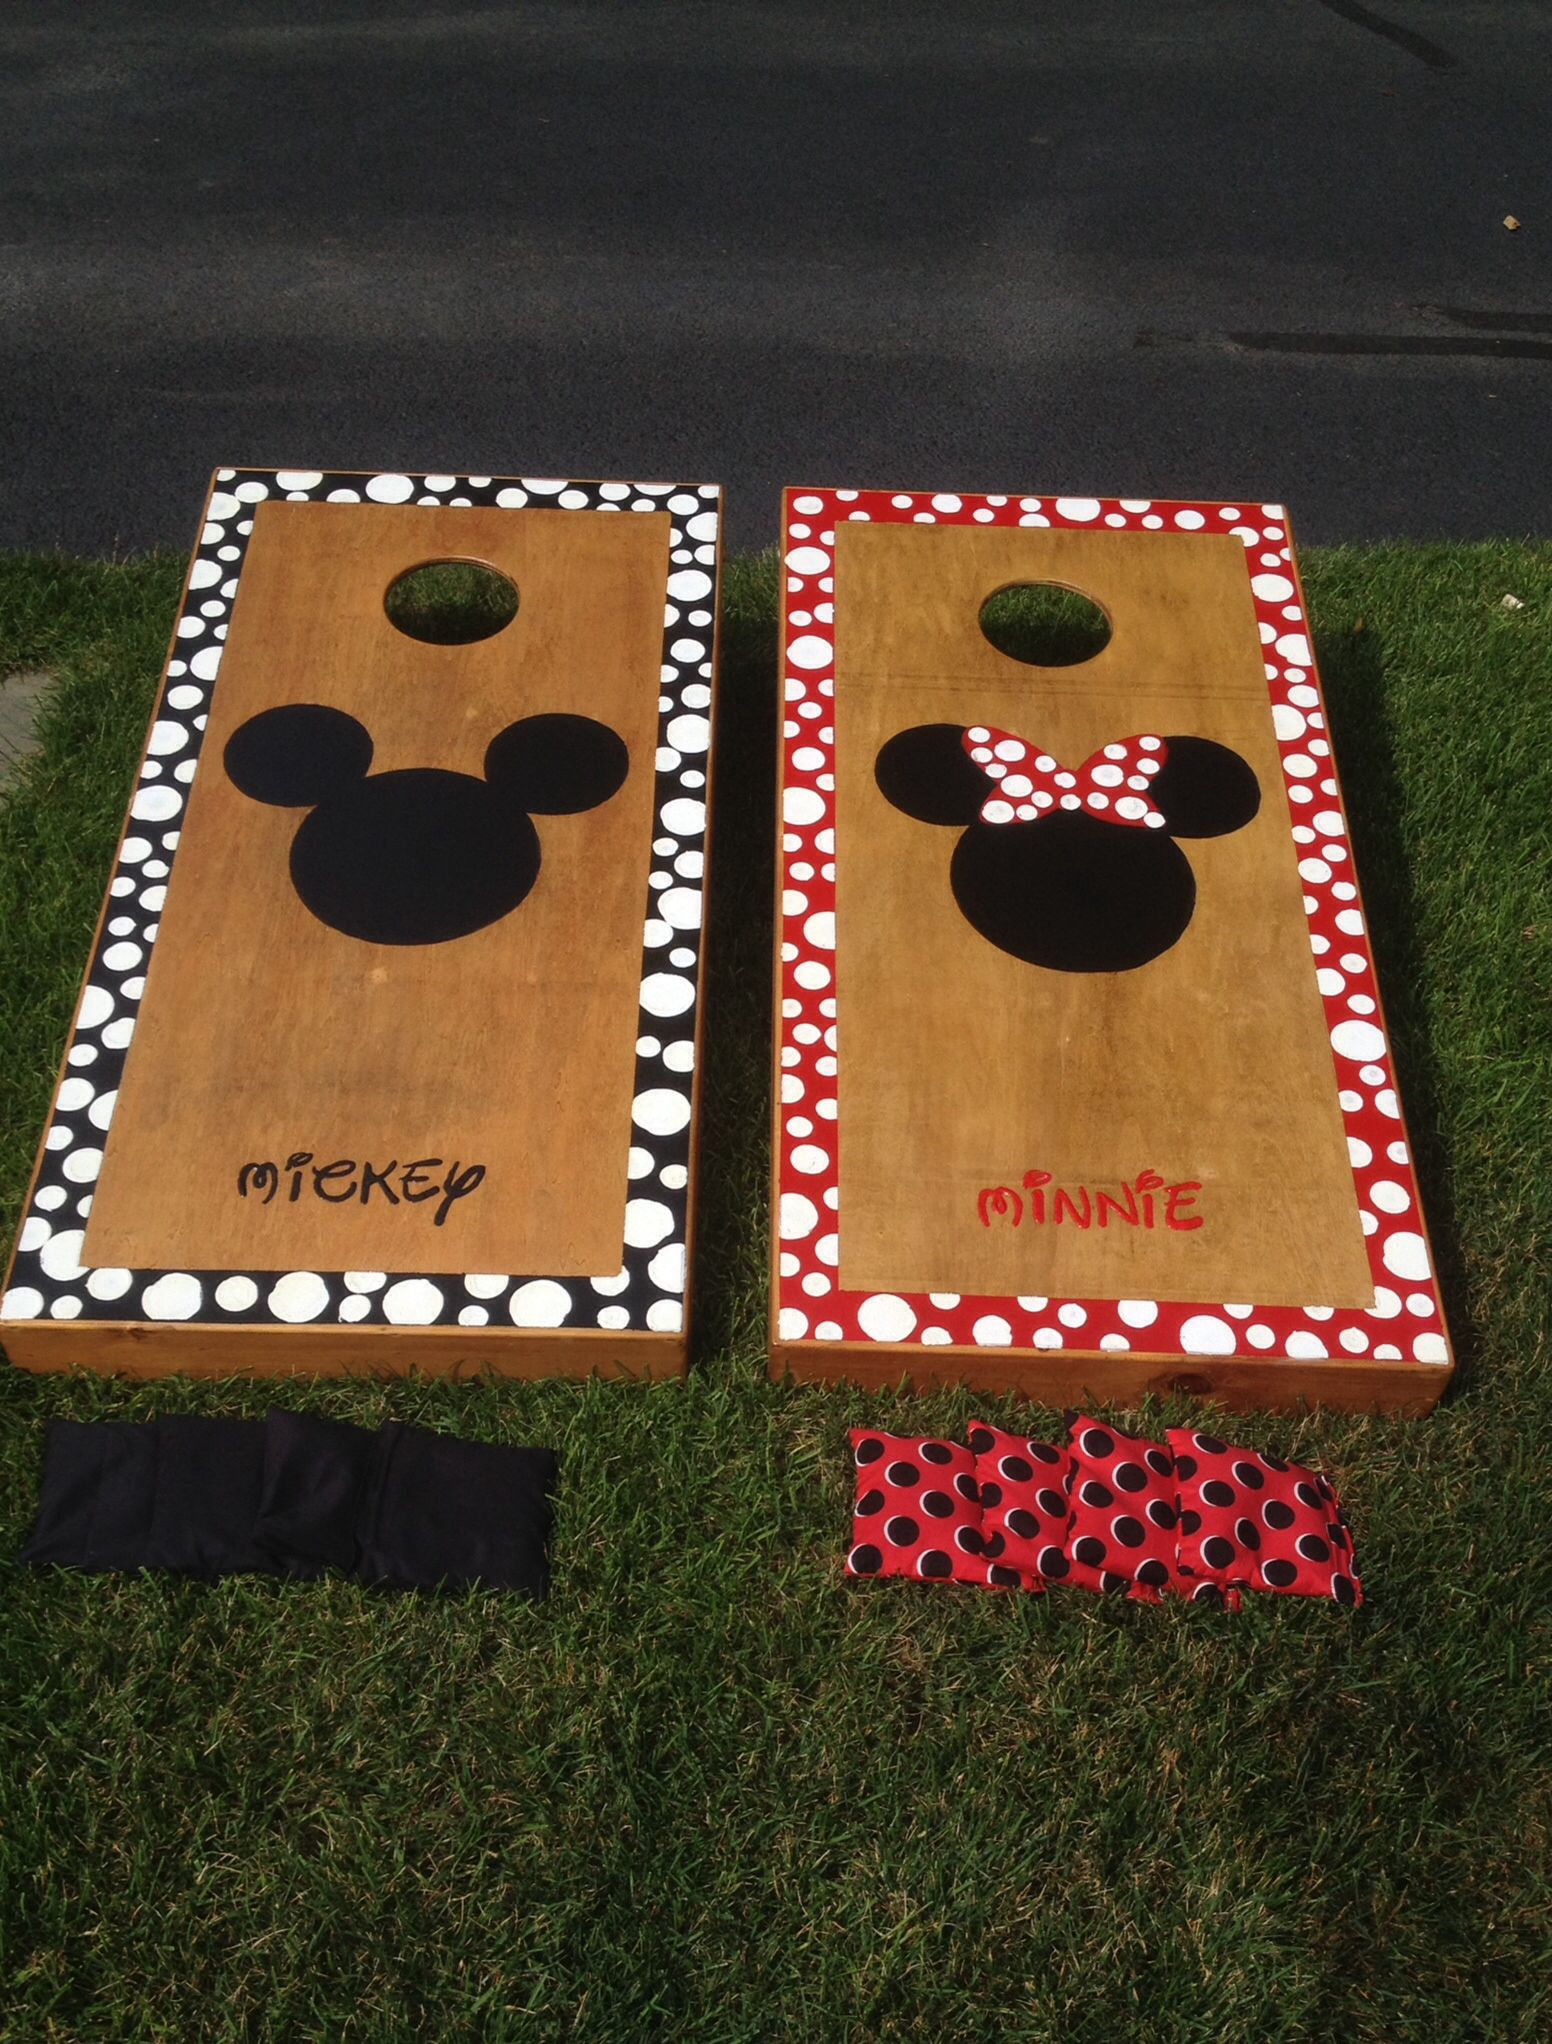 try this cornhole idea - Cornhole Design Ideas